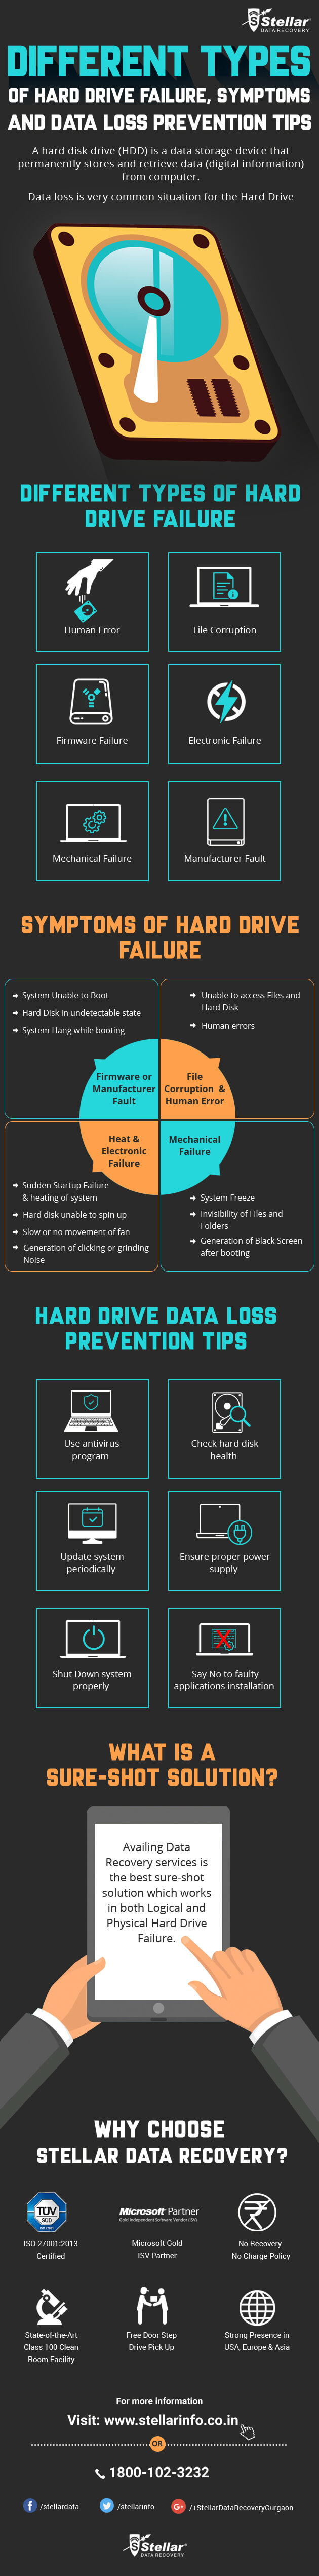 Types of Hard Drive Failure and Data Loss Prevention Tips